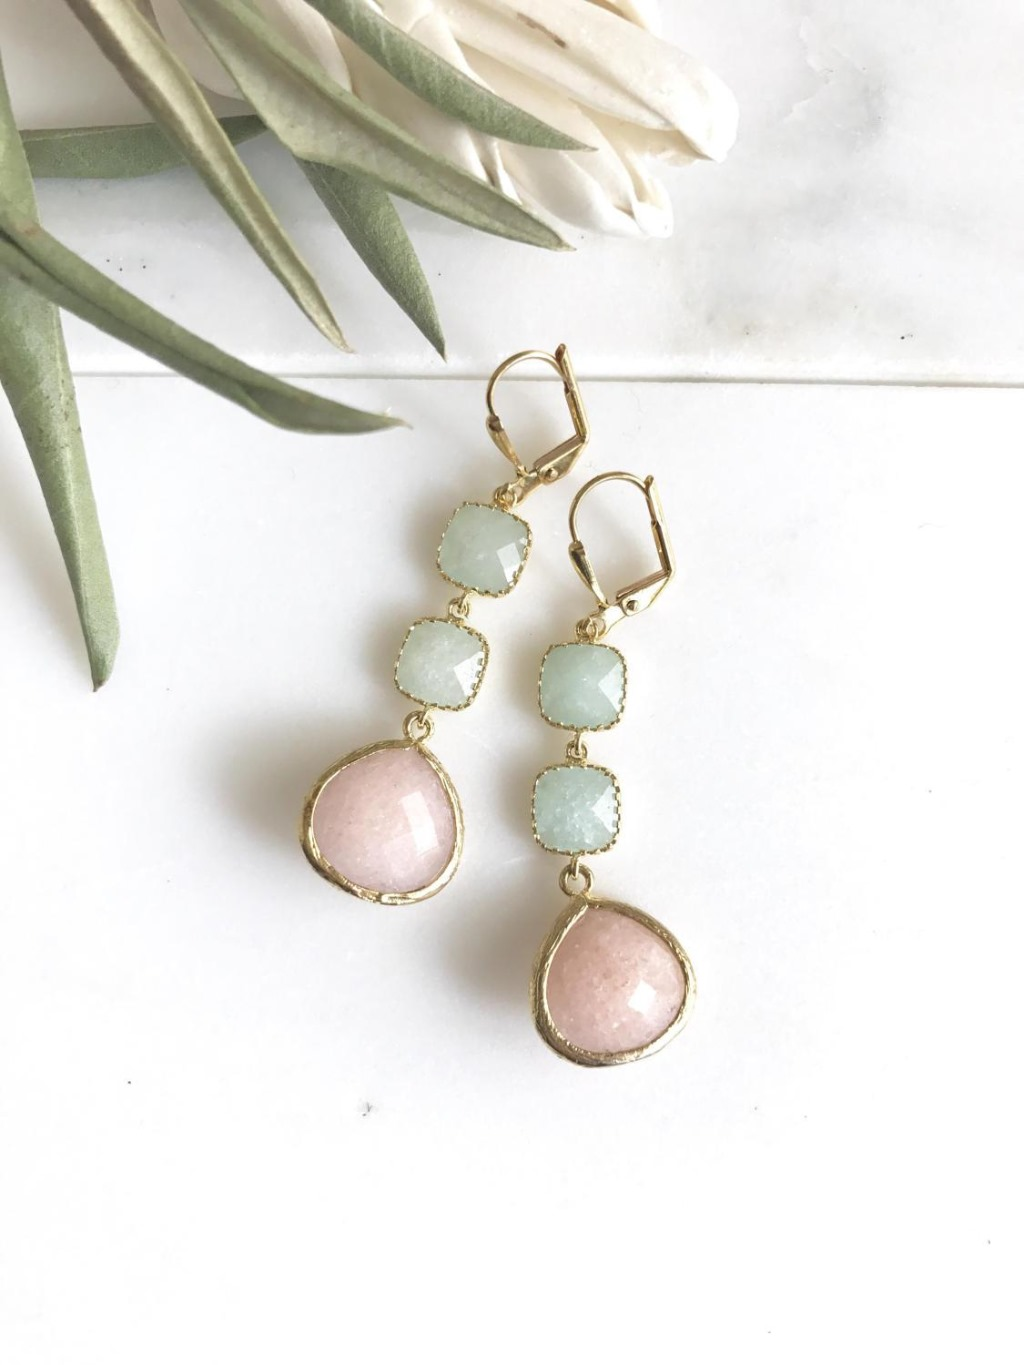 The teardrops are a peachy pink and are synthetic reconstructed stone which measure 15mm x 18mm. The earrings dangle about 1.75 inches